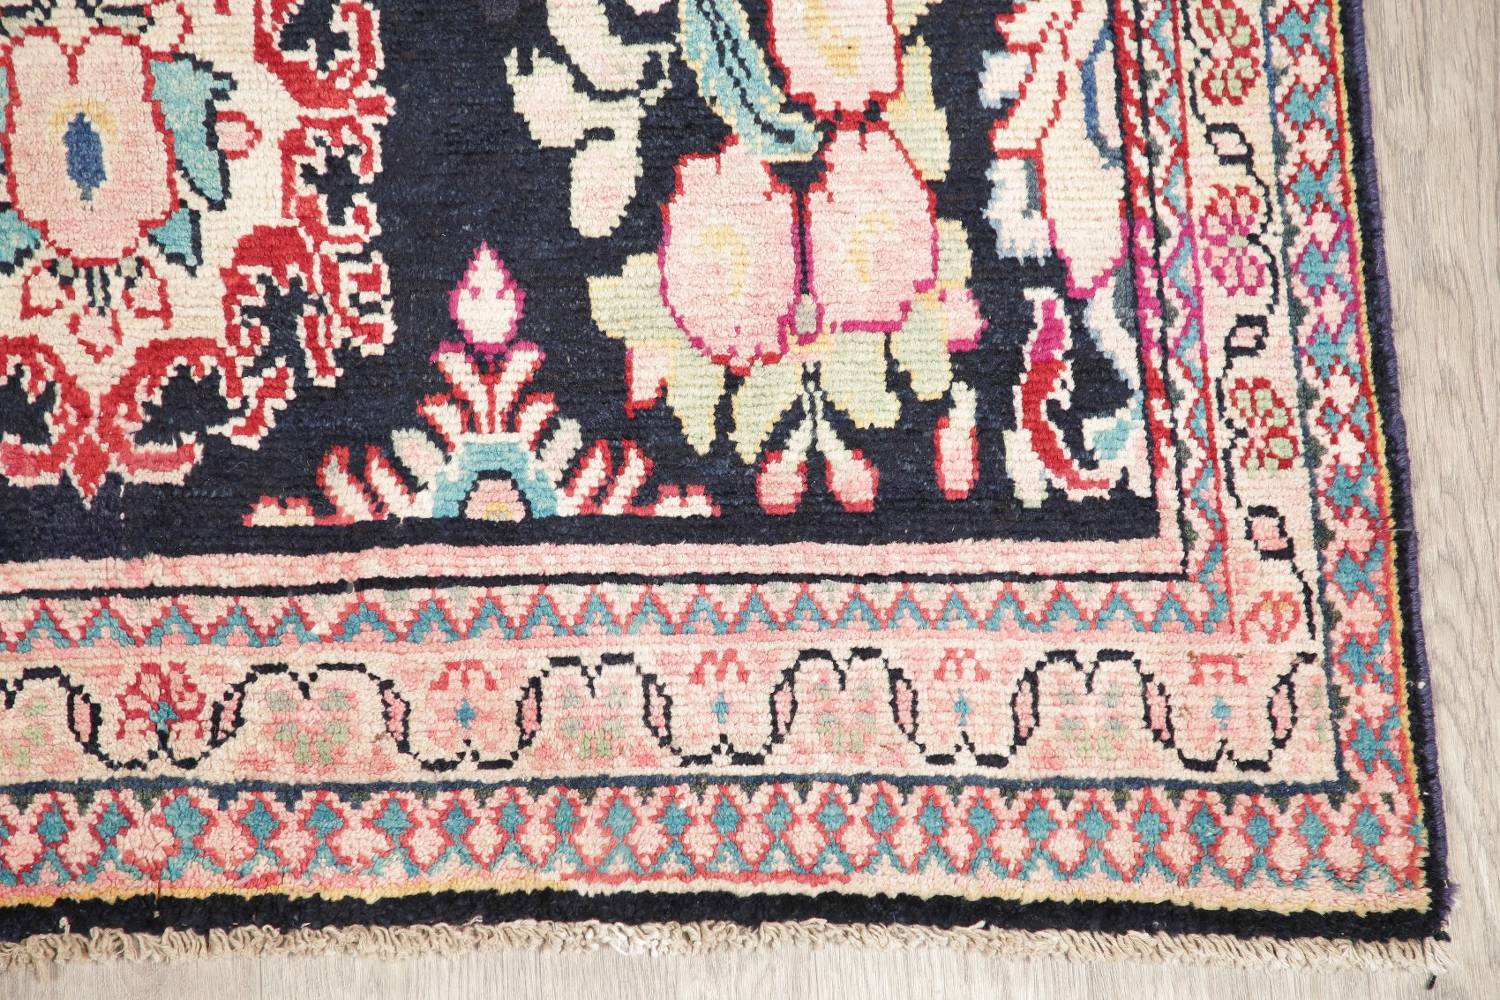 Antique Navy Blue Sultanabad Persian Runner Rug 5x9 image 6